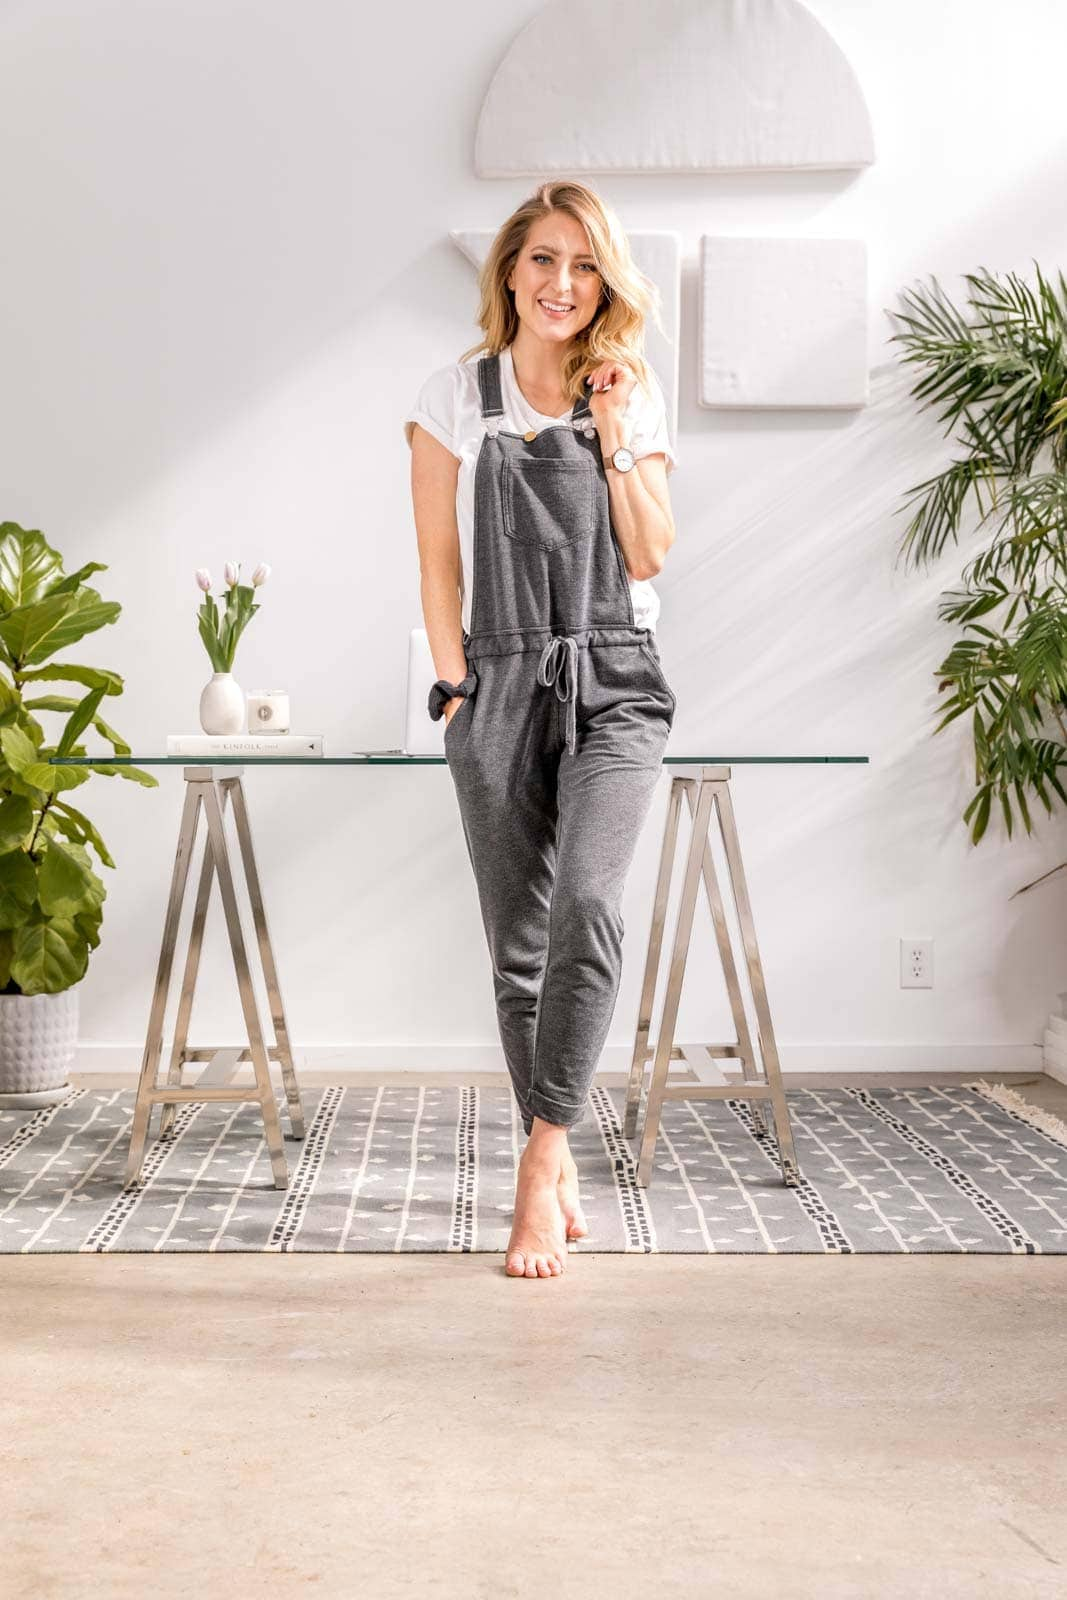 799f561e5d 5 Outfits to Wear When You Work From Home - Broma Bakery